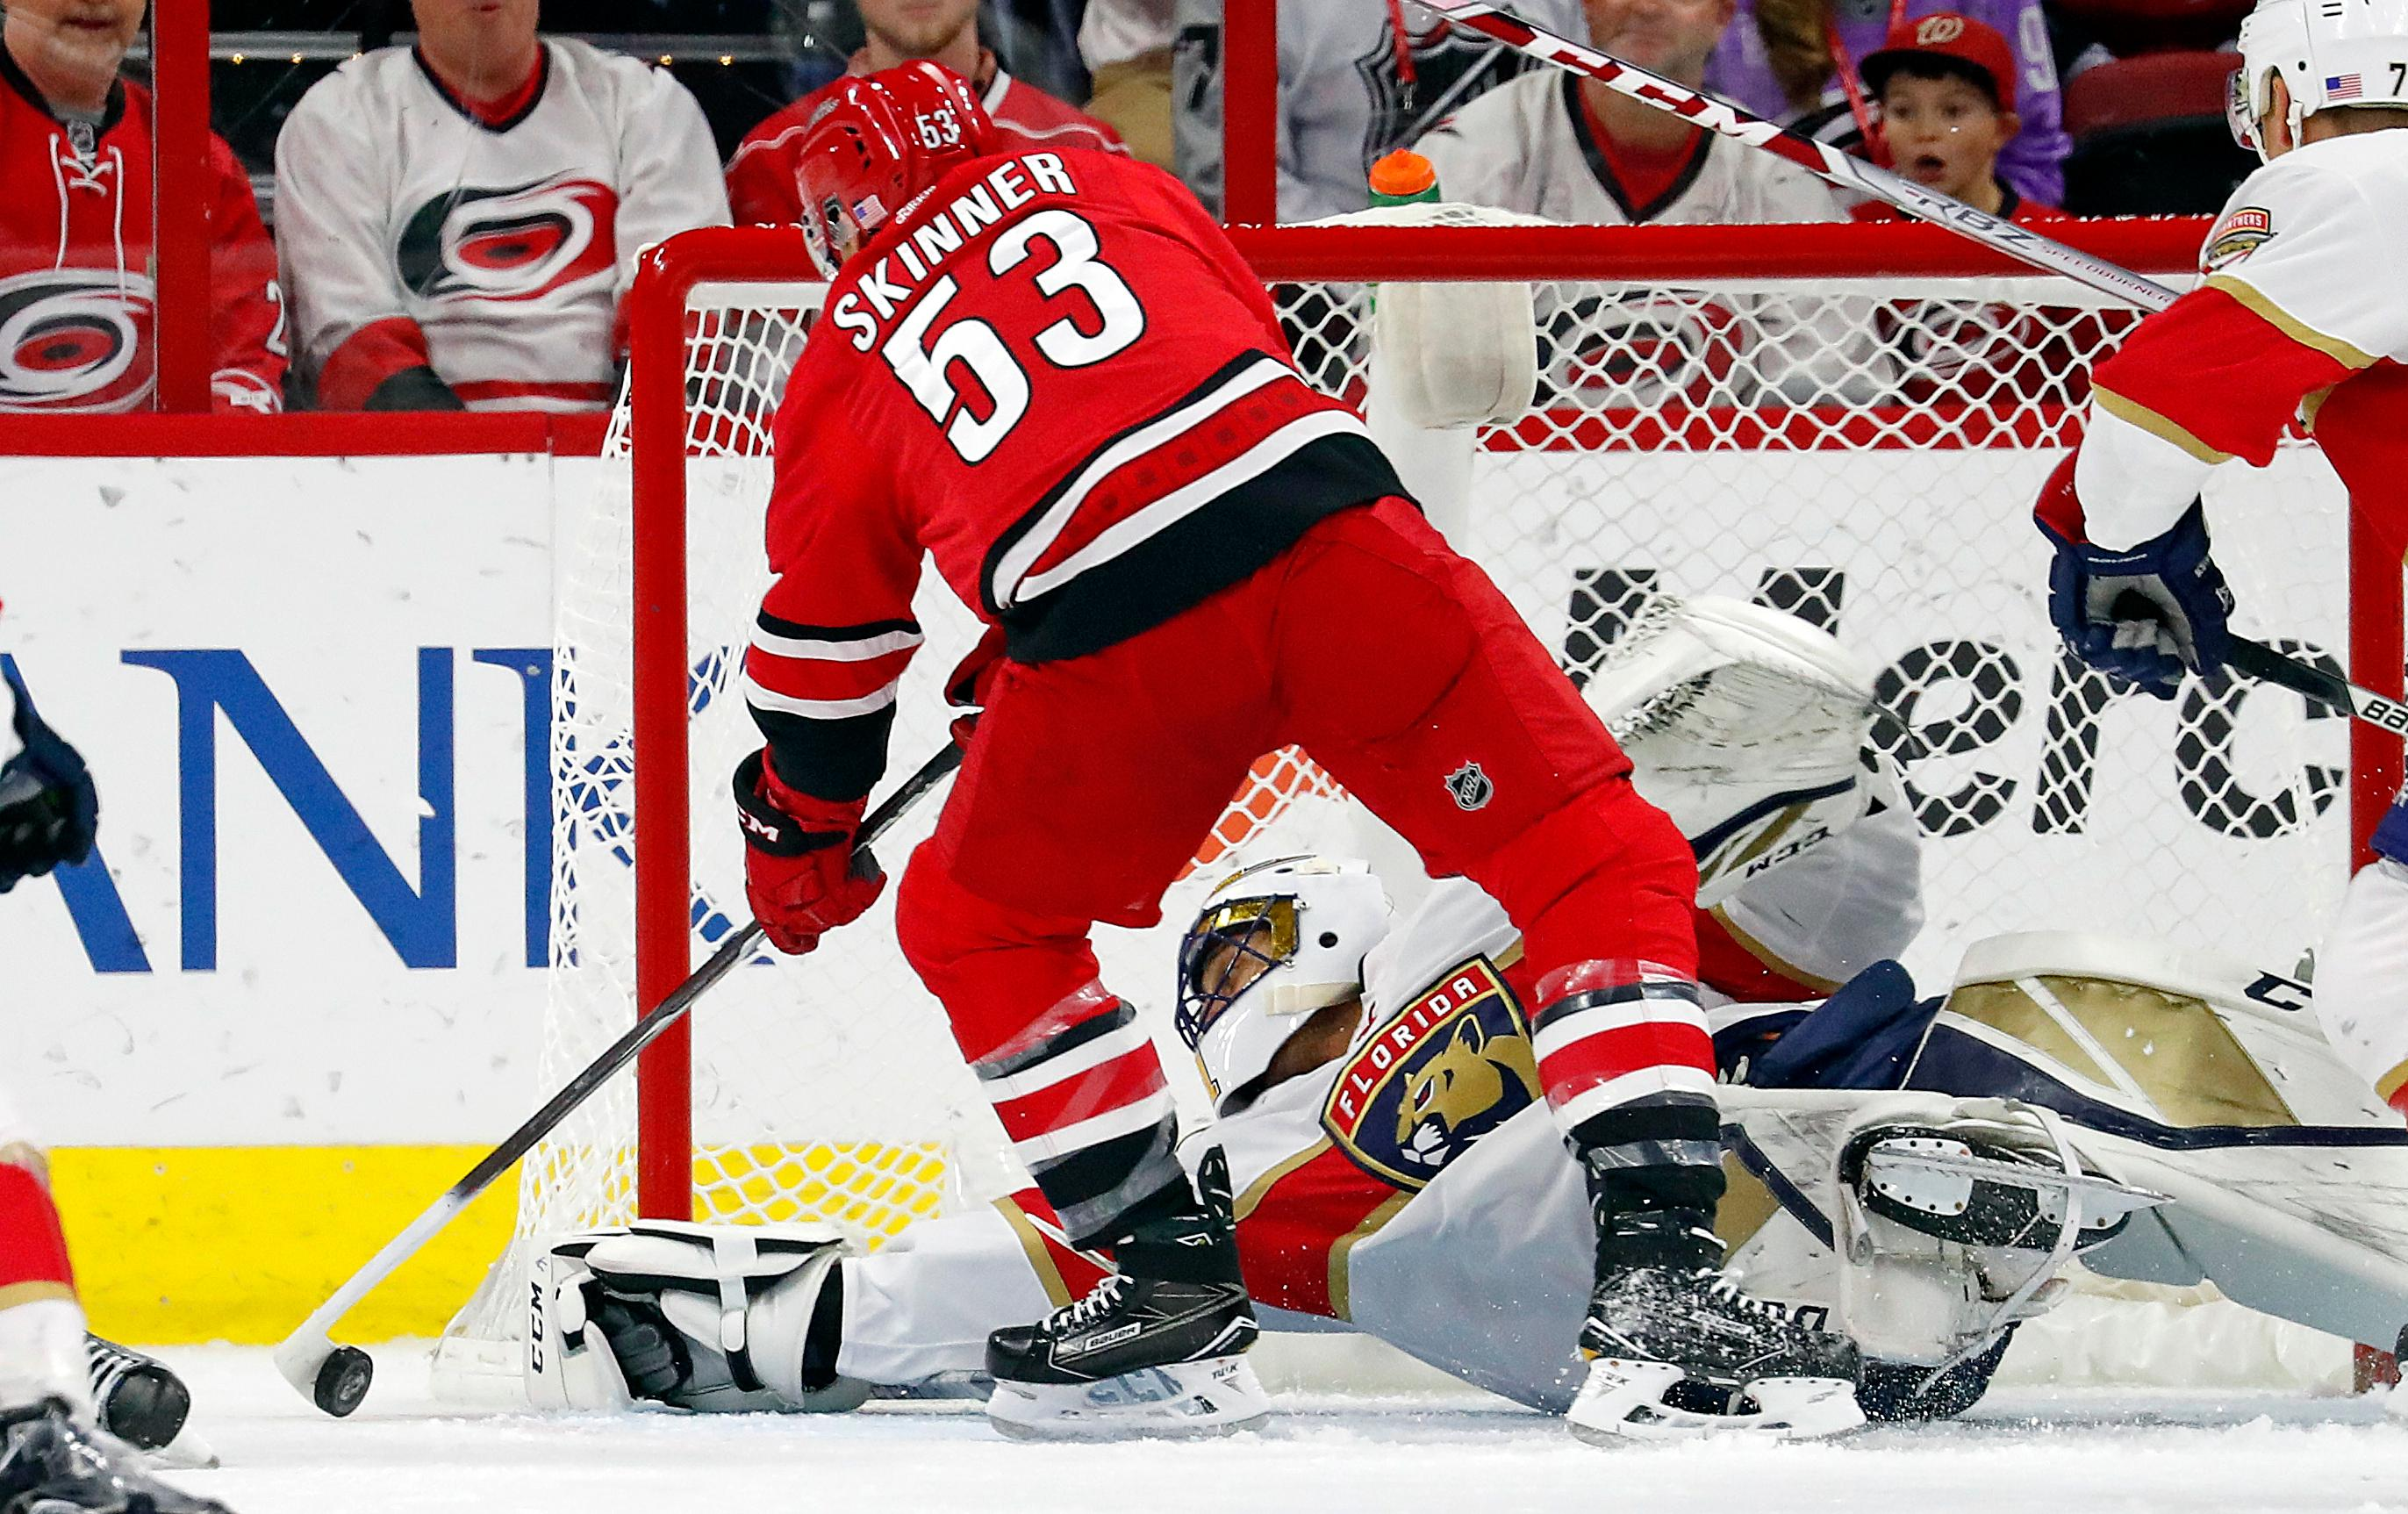 Carolina Hurricanes' Jeff Skinner (53) tries to stuff the puck past Florida Panthers goalie Roberto Luongo (1) during the first period of an NHL hockey game, Tuesday, Nov. 7, 2017, in Raleigh, N.C. (AP Photo/Karl B DeBlaker)